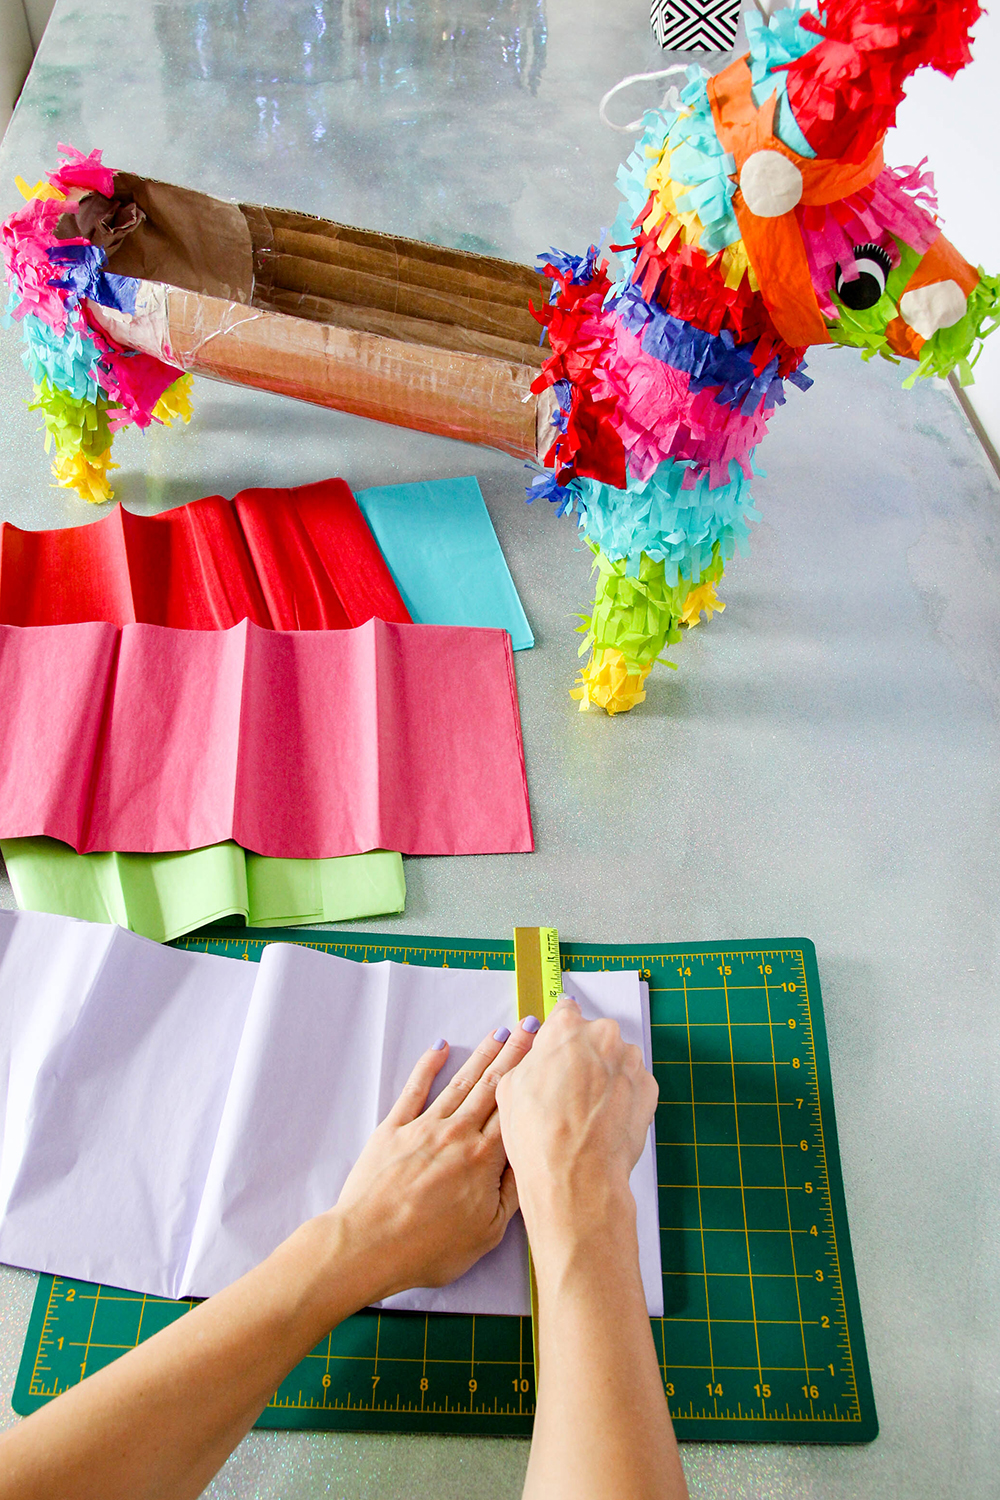 Pinata bar - cut tissue strips